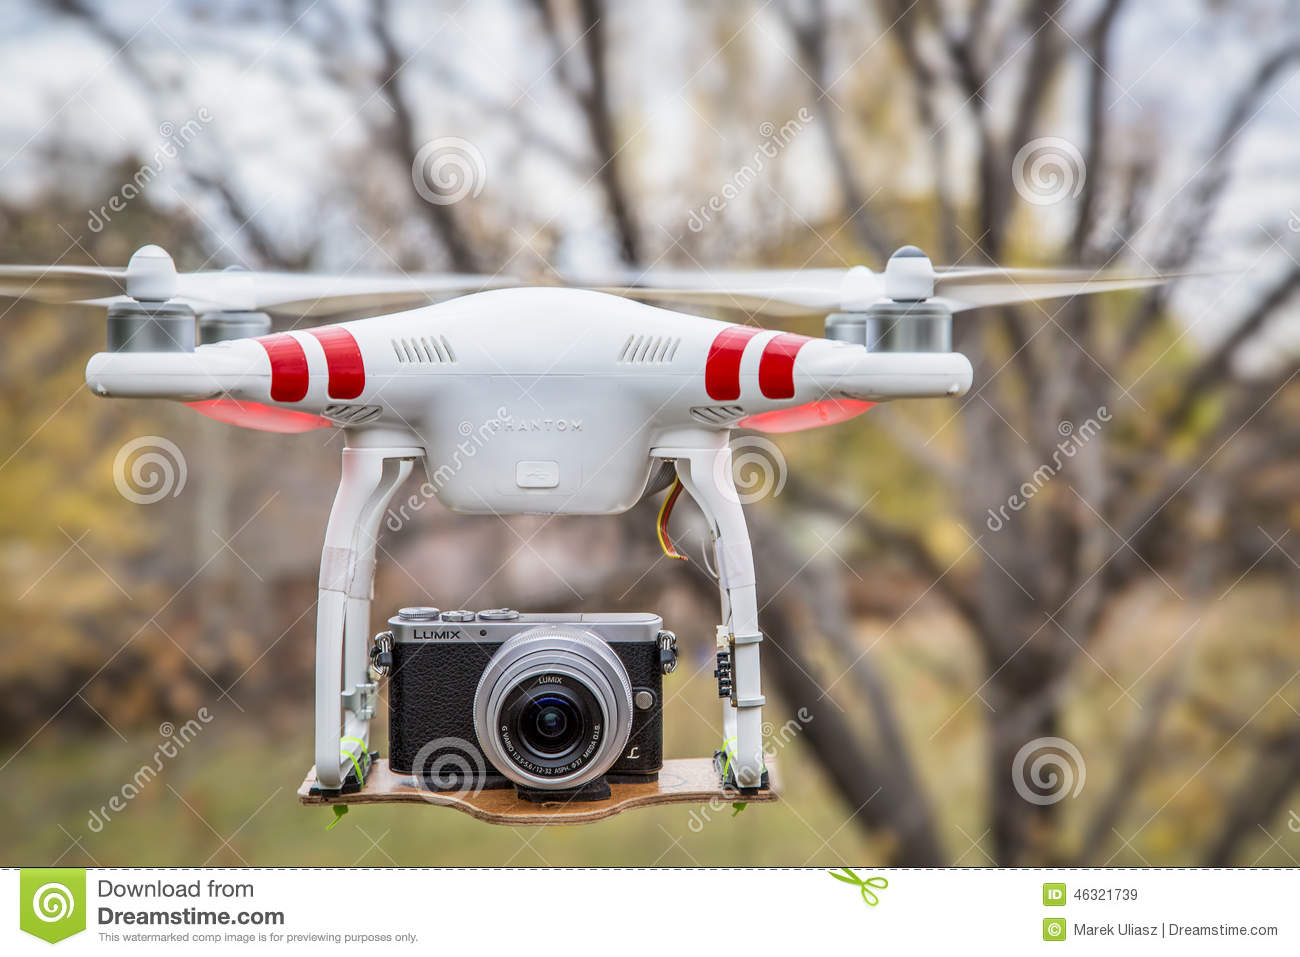 how to download photos from phantom 3